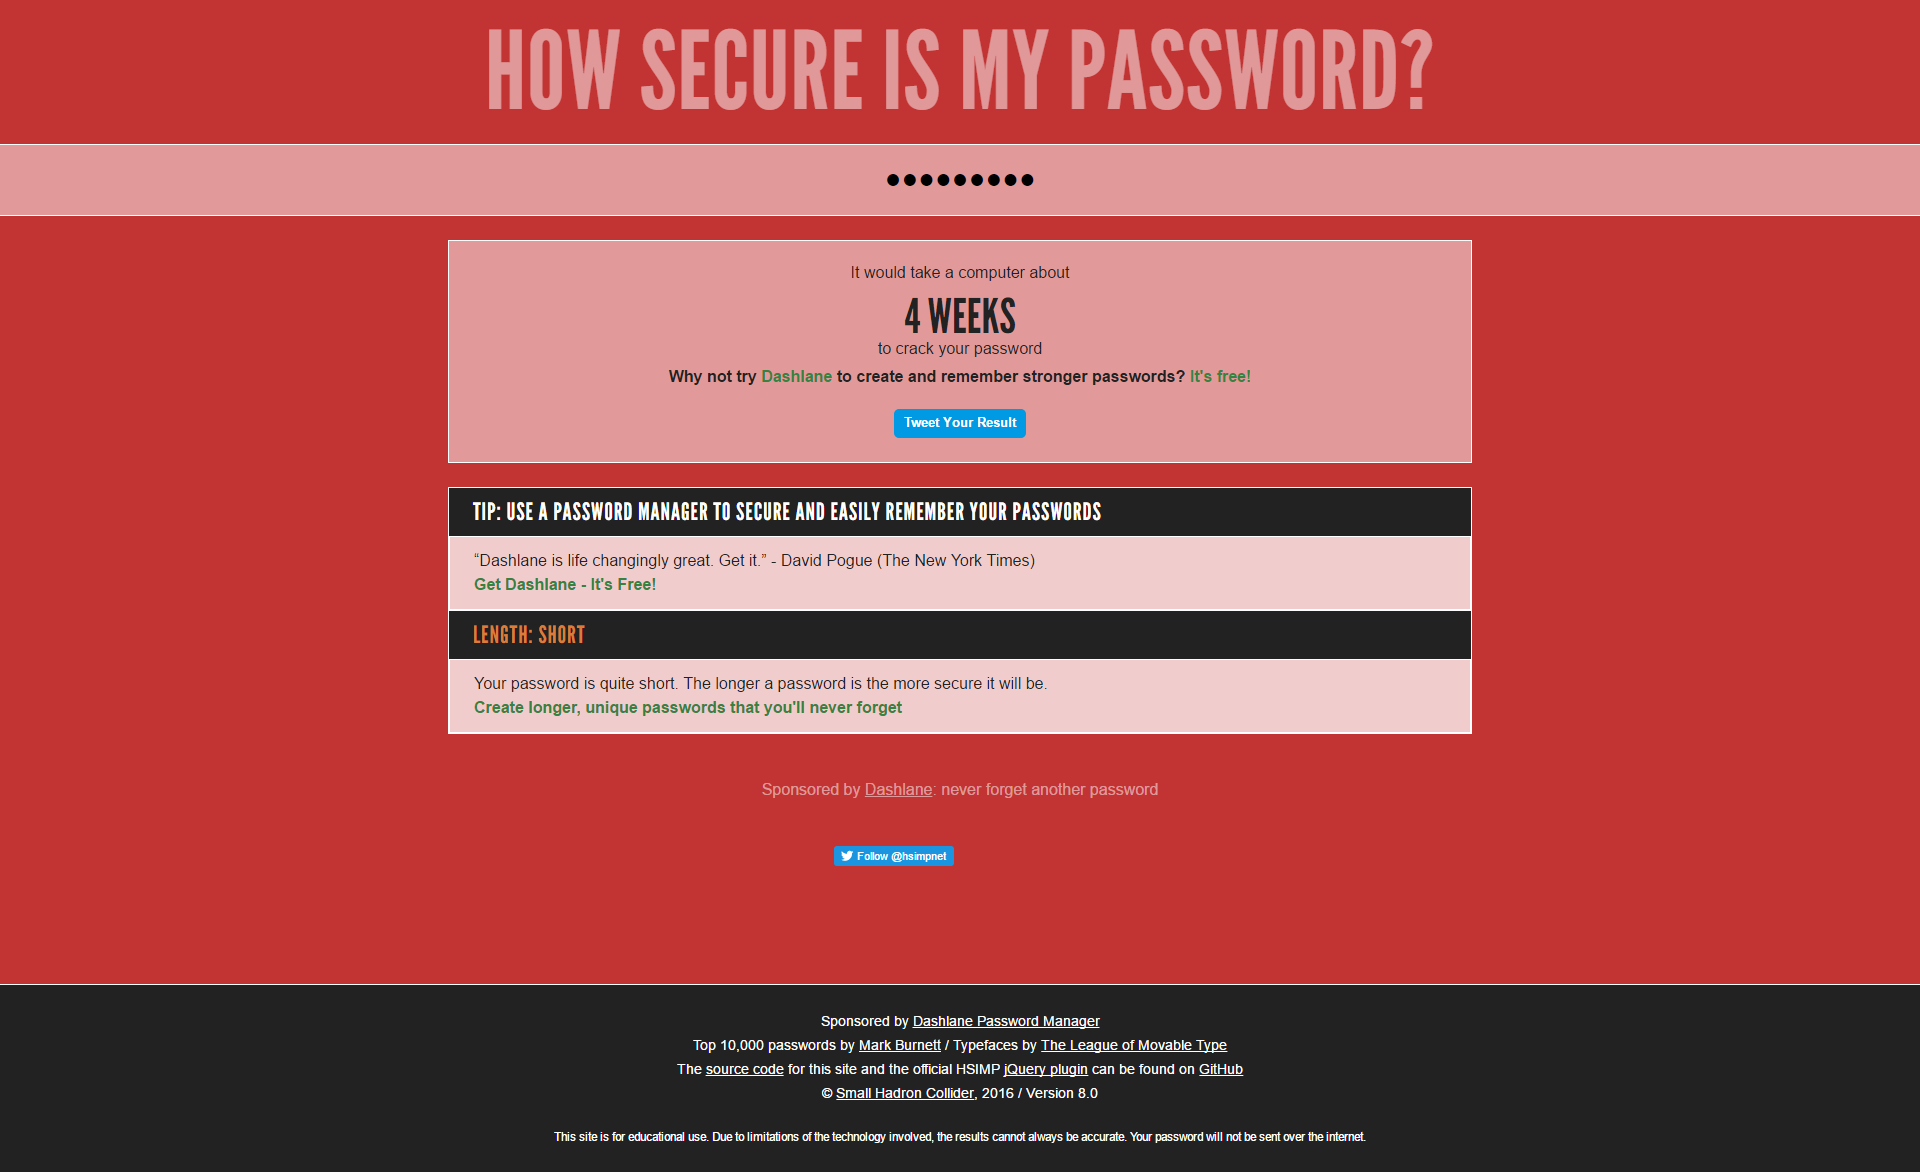 Acceptable Pseudo Password Length? - Programs, Apps and